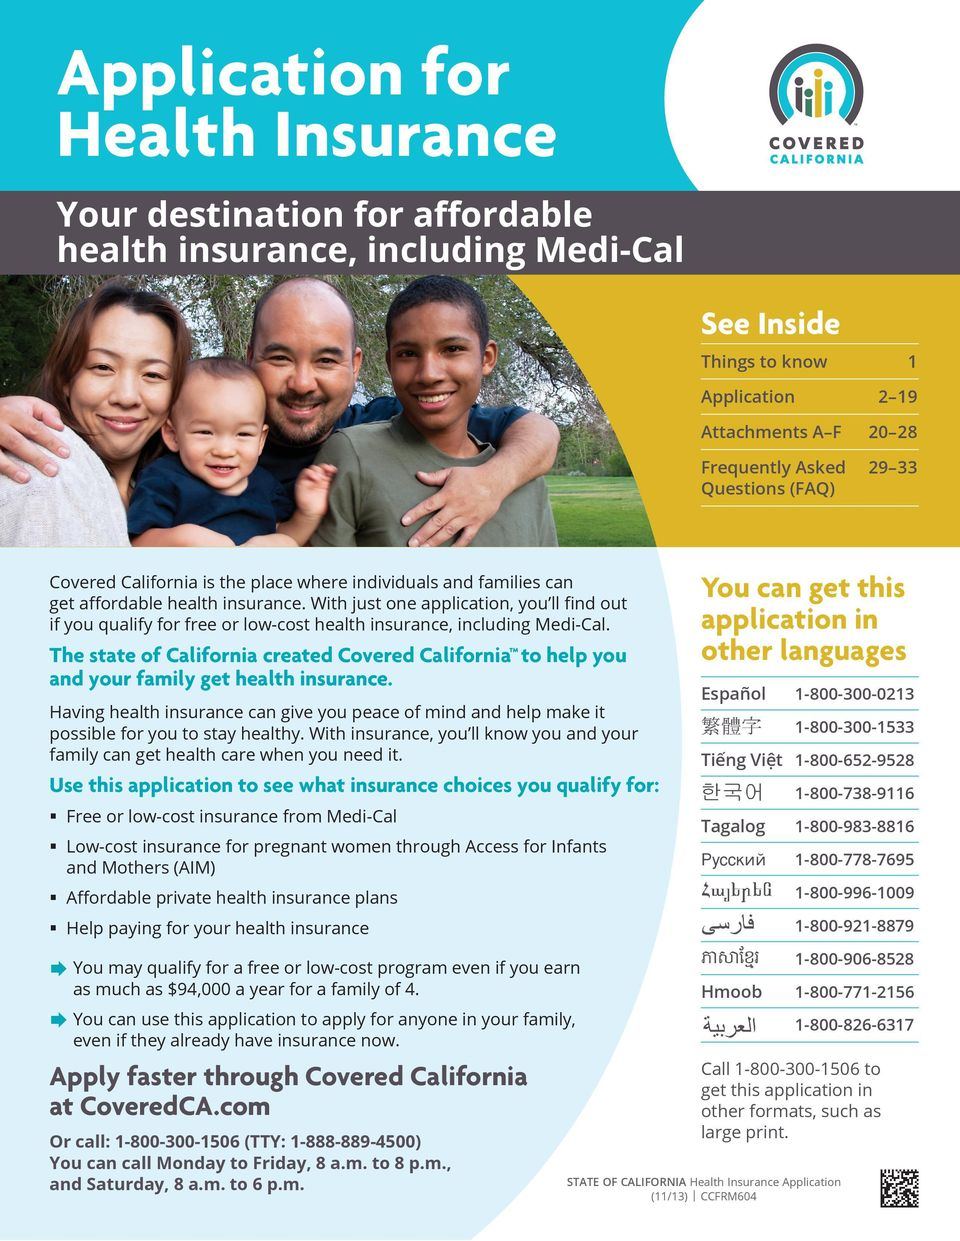 The state of California created Covered California to help you and your family get health insurance.